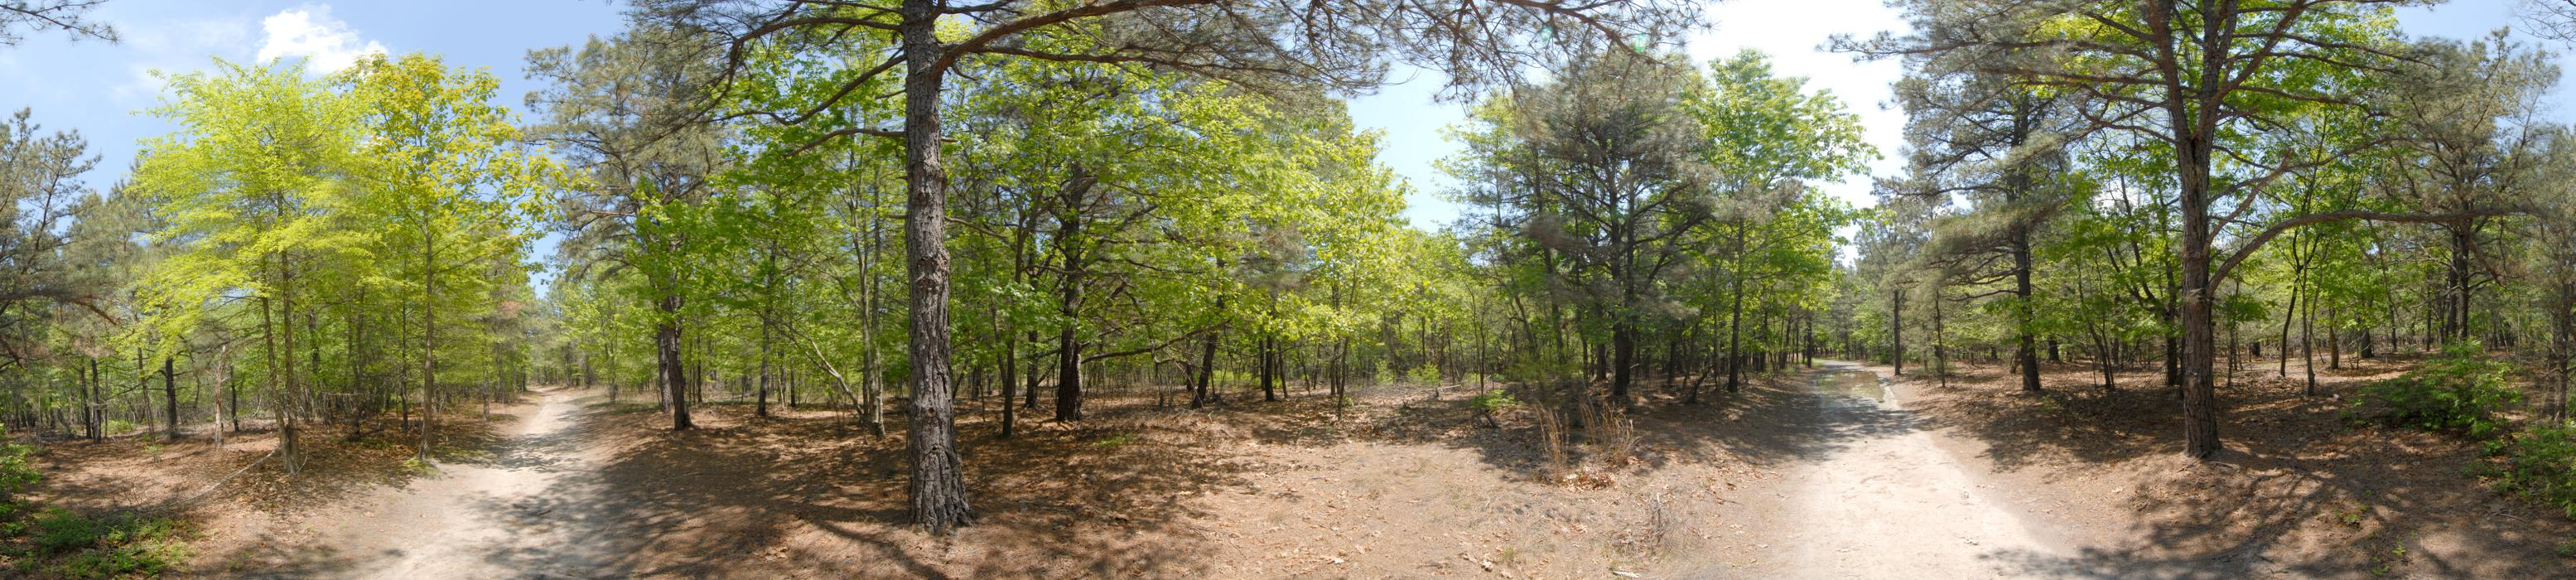 dirt road, panoramic, path, trail, trees, woods